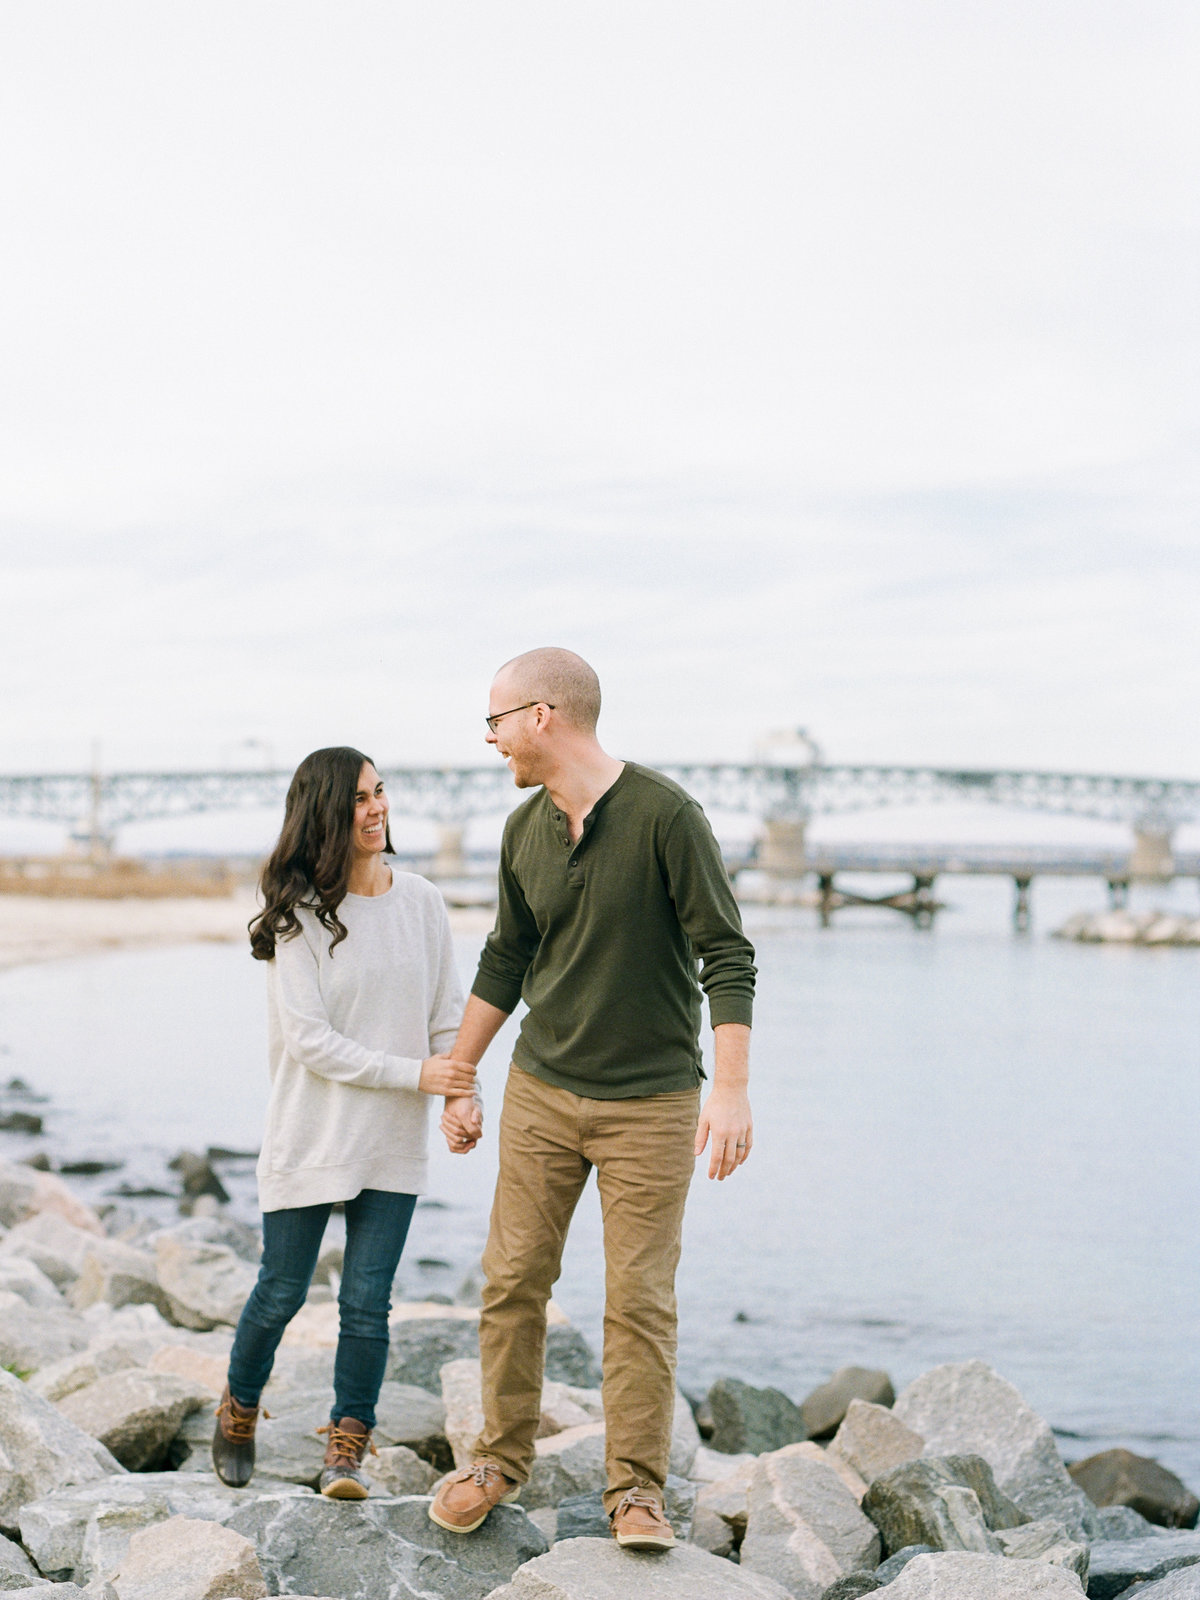 beach-adventure-engagement-photo